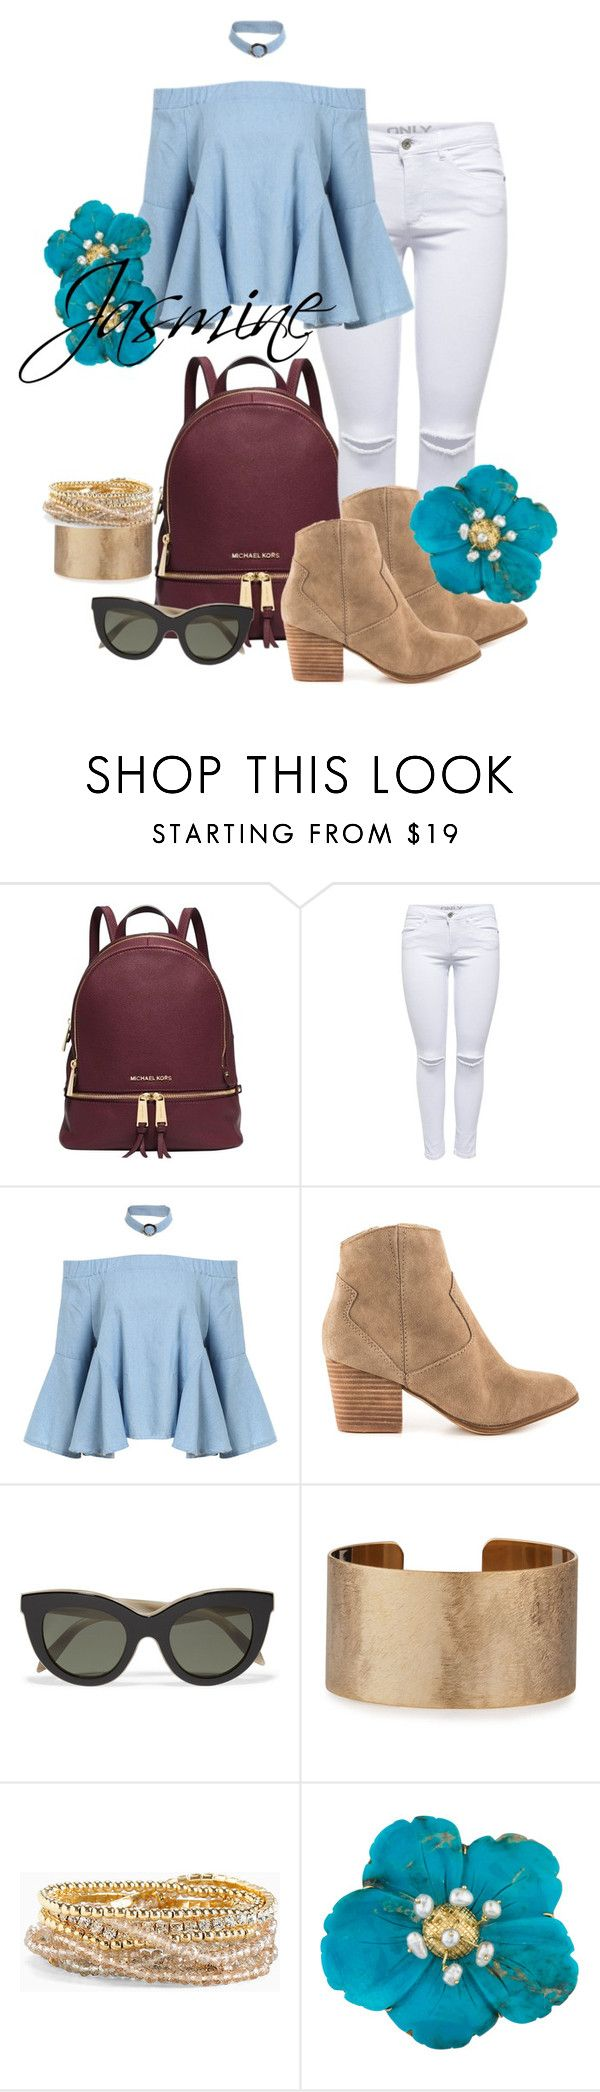 """Jasmine"" by grraciie-386 on Polyvore featuring Michael Kors, ALDO, Victoria Beckham, Panacea and Torrid"